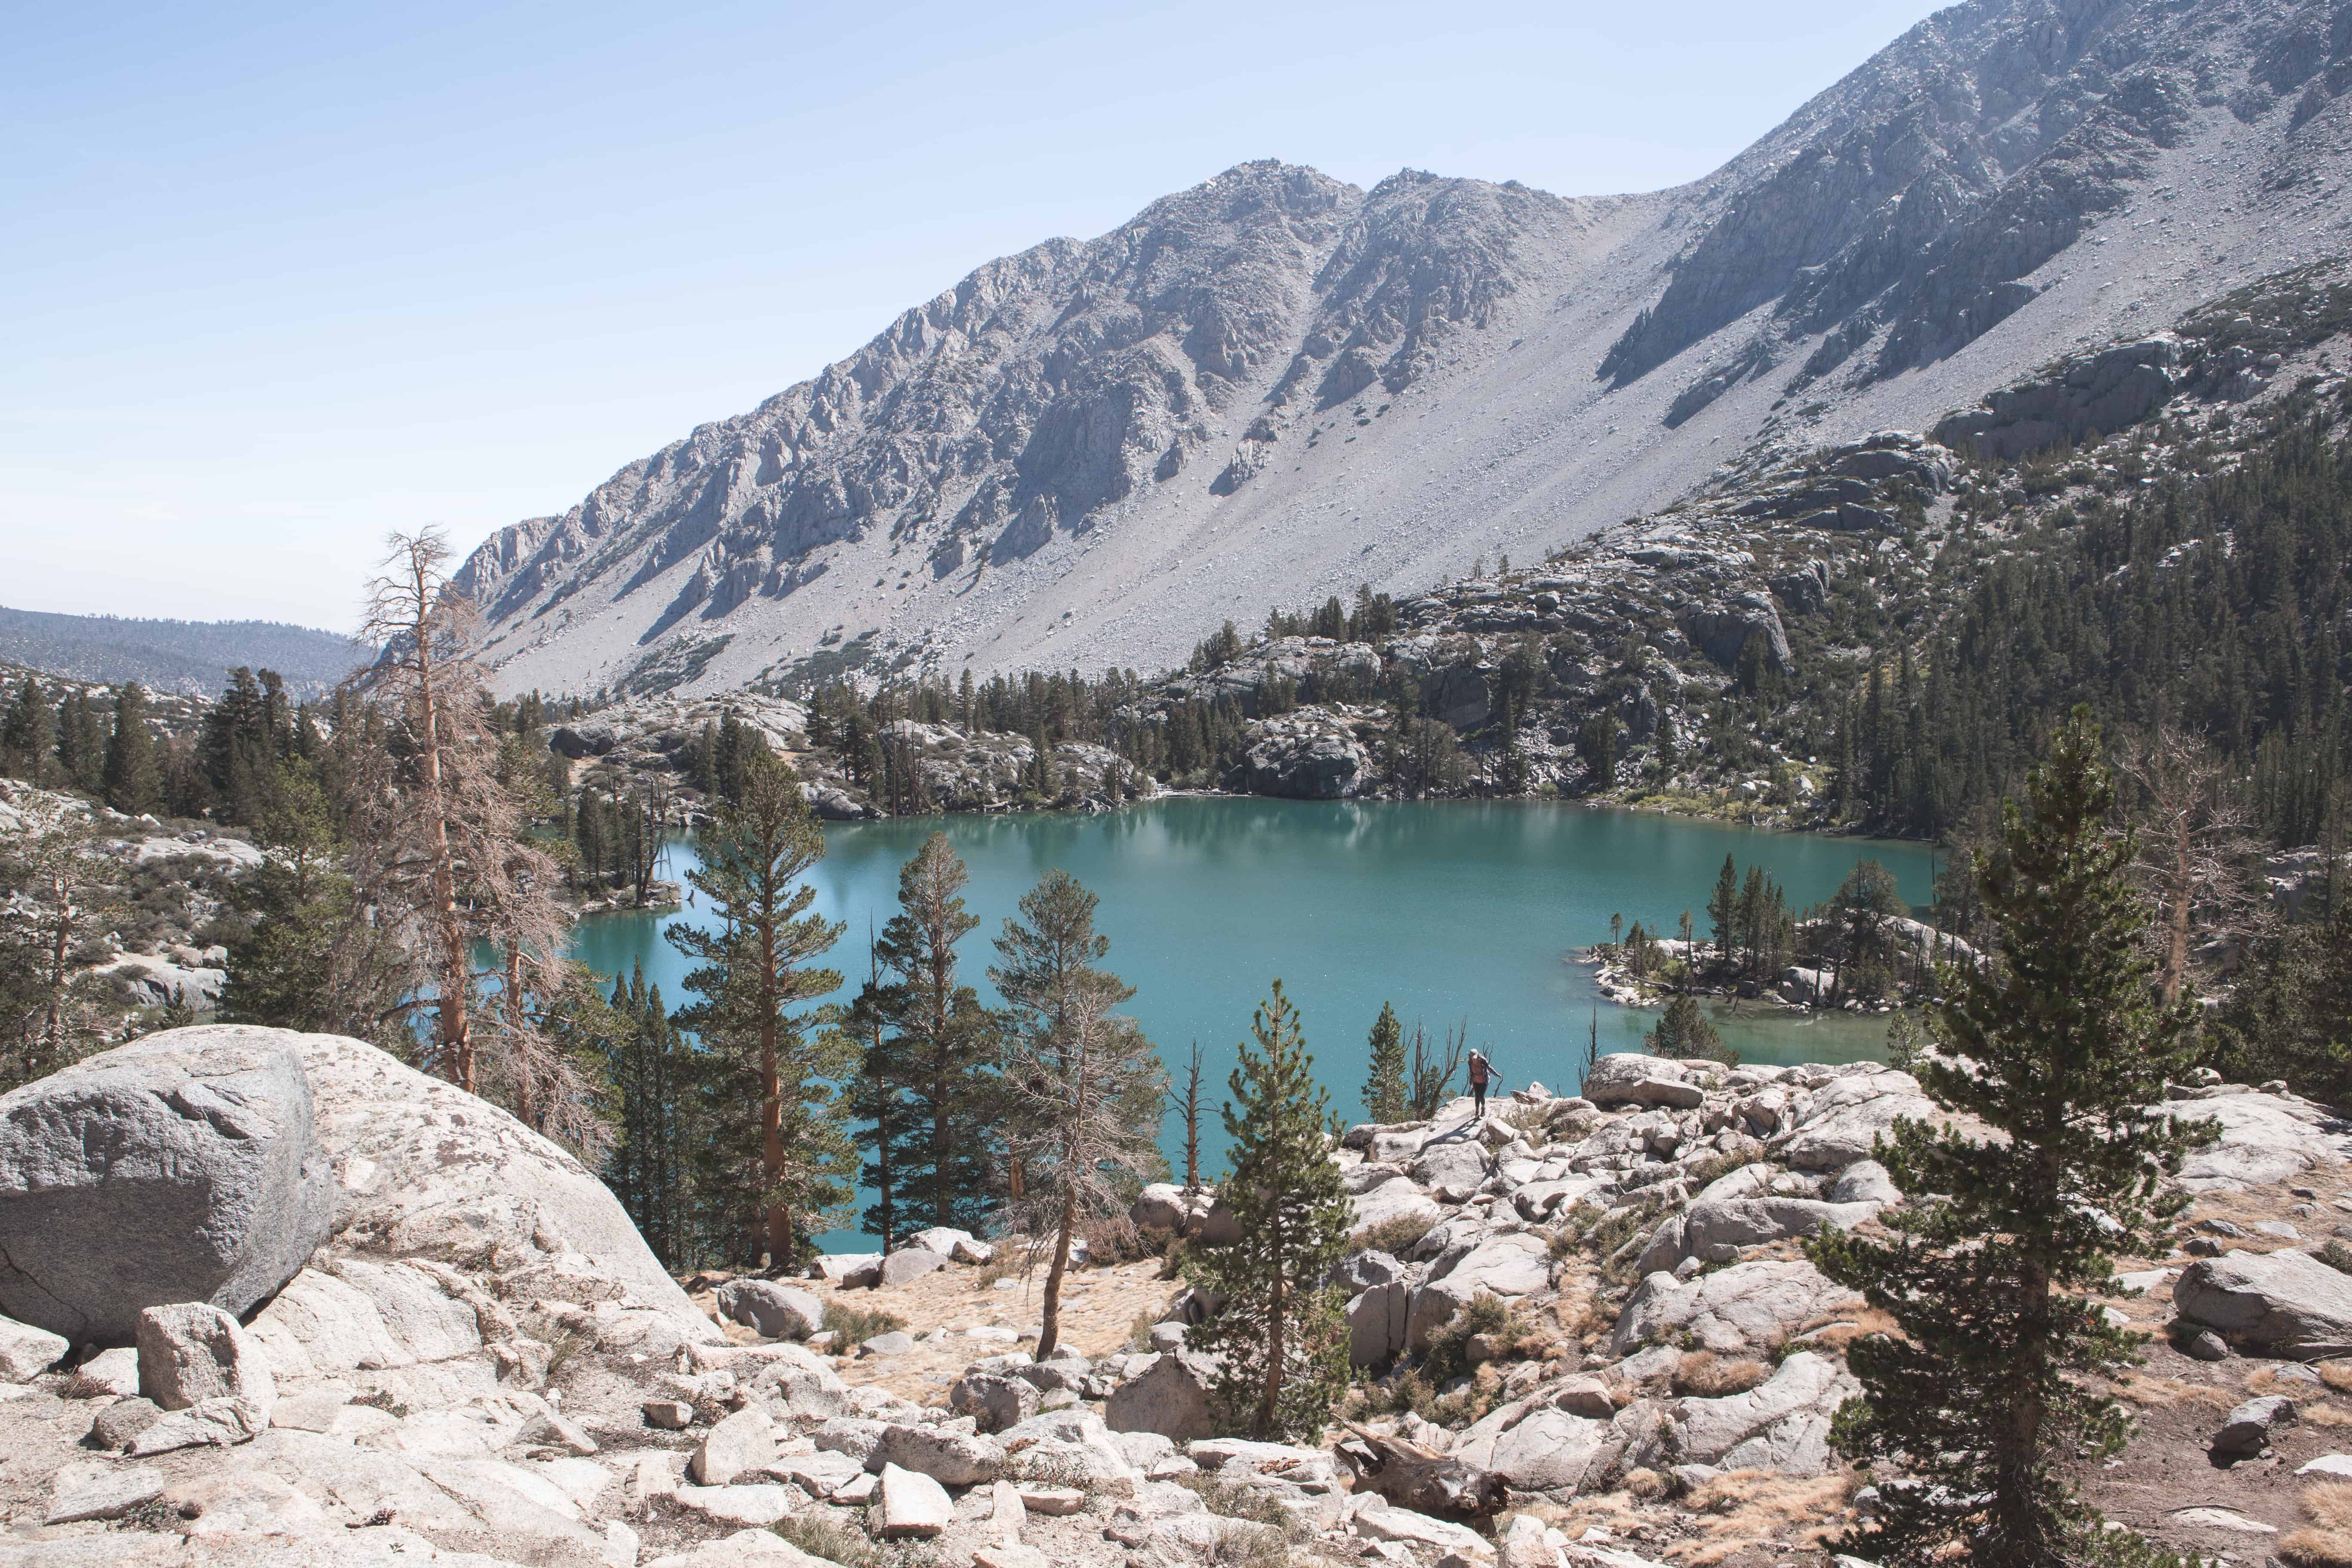 First Lake on the Big Pine Lakes Loop in California